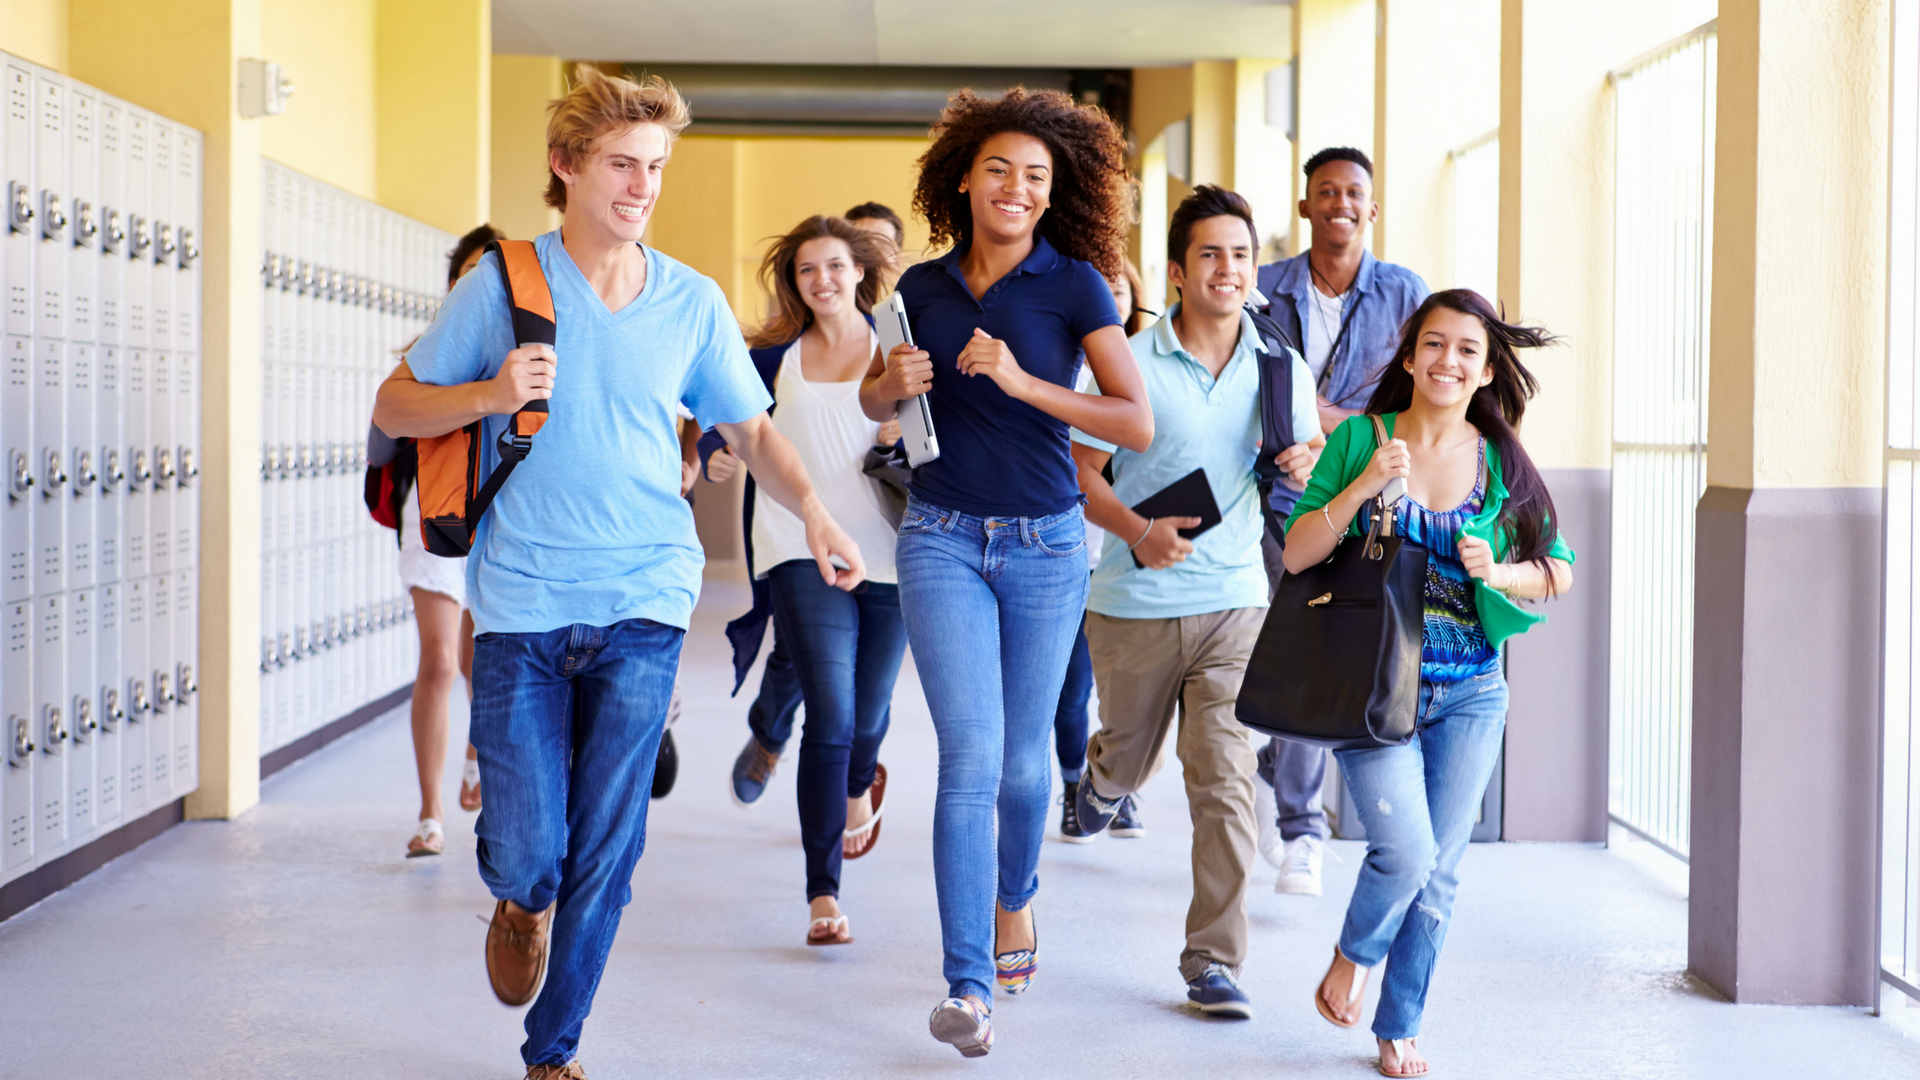 Acceleration - Academic acceleration is a strategy that works. It allows gifted children to remain challenged, interested, and engaged in school. Research shows that children benefit socially, emotionally, and intellectually.